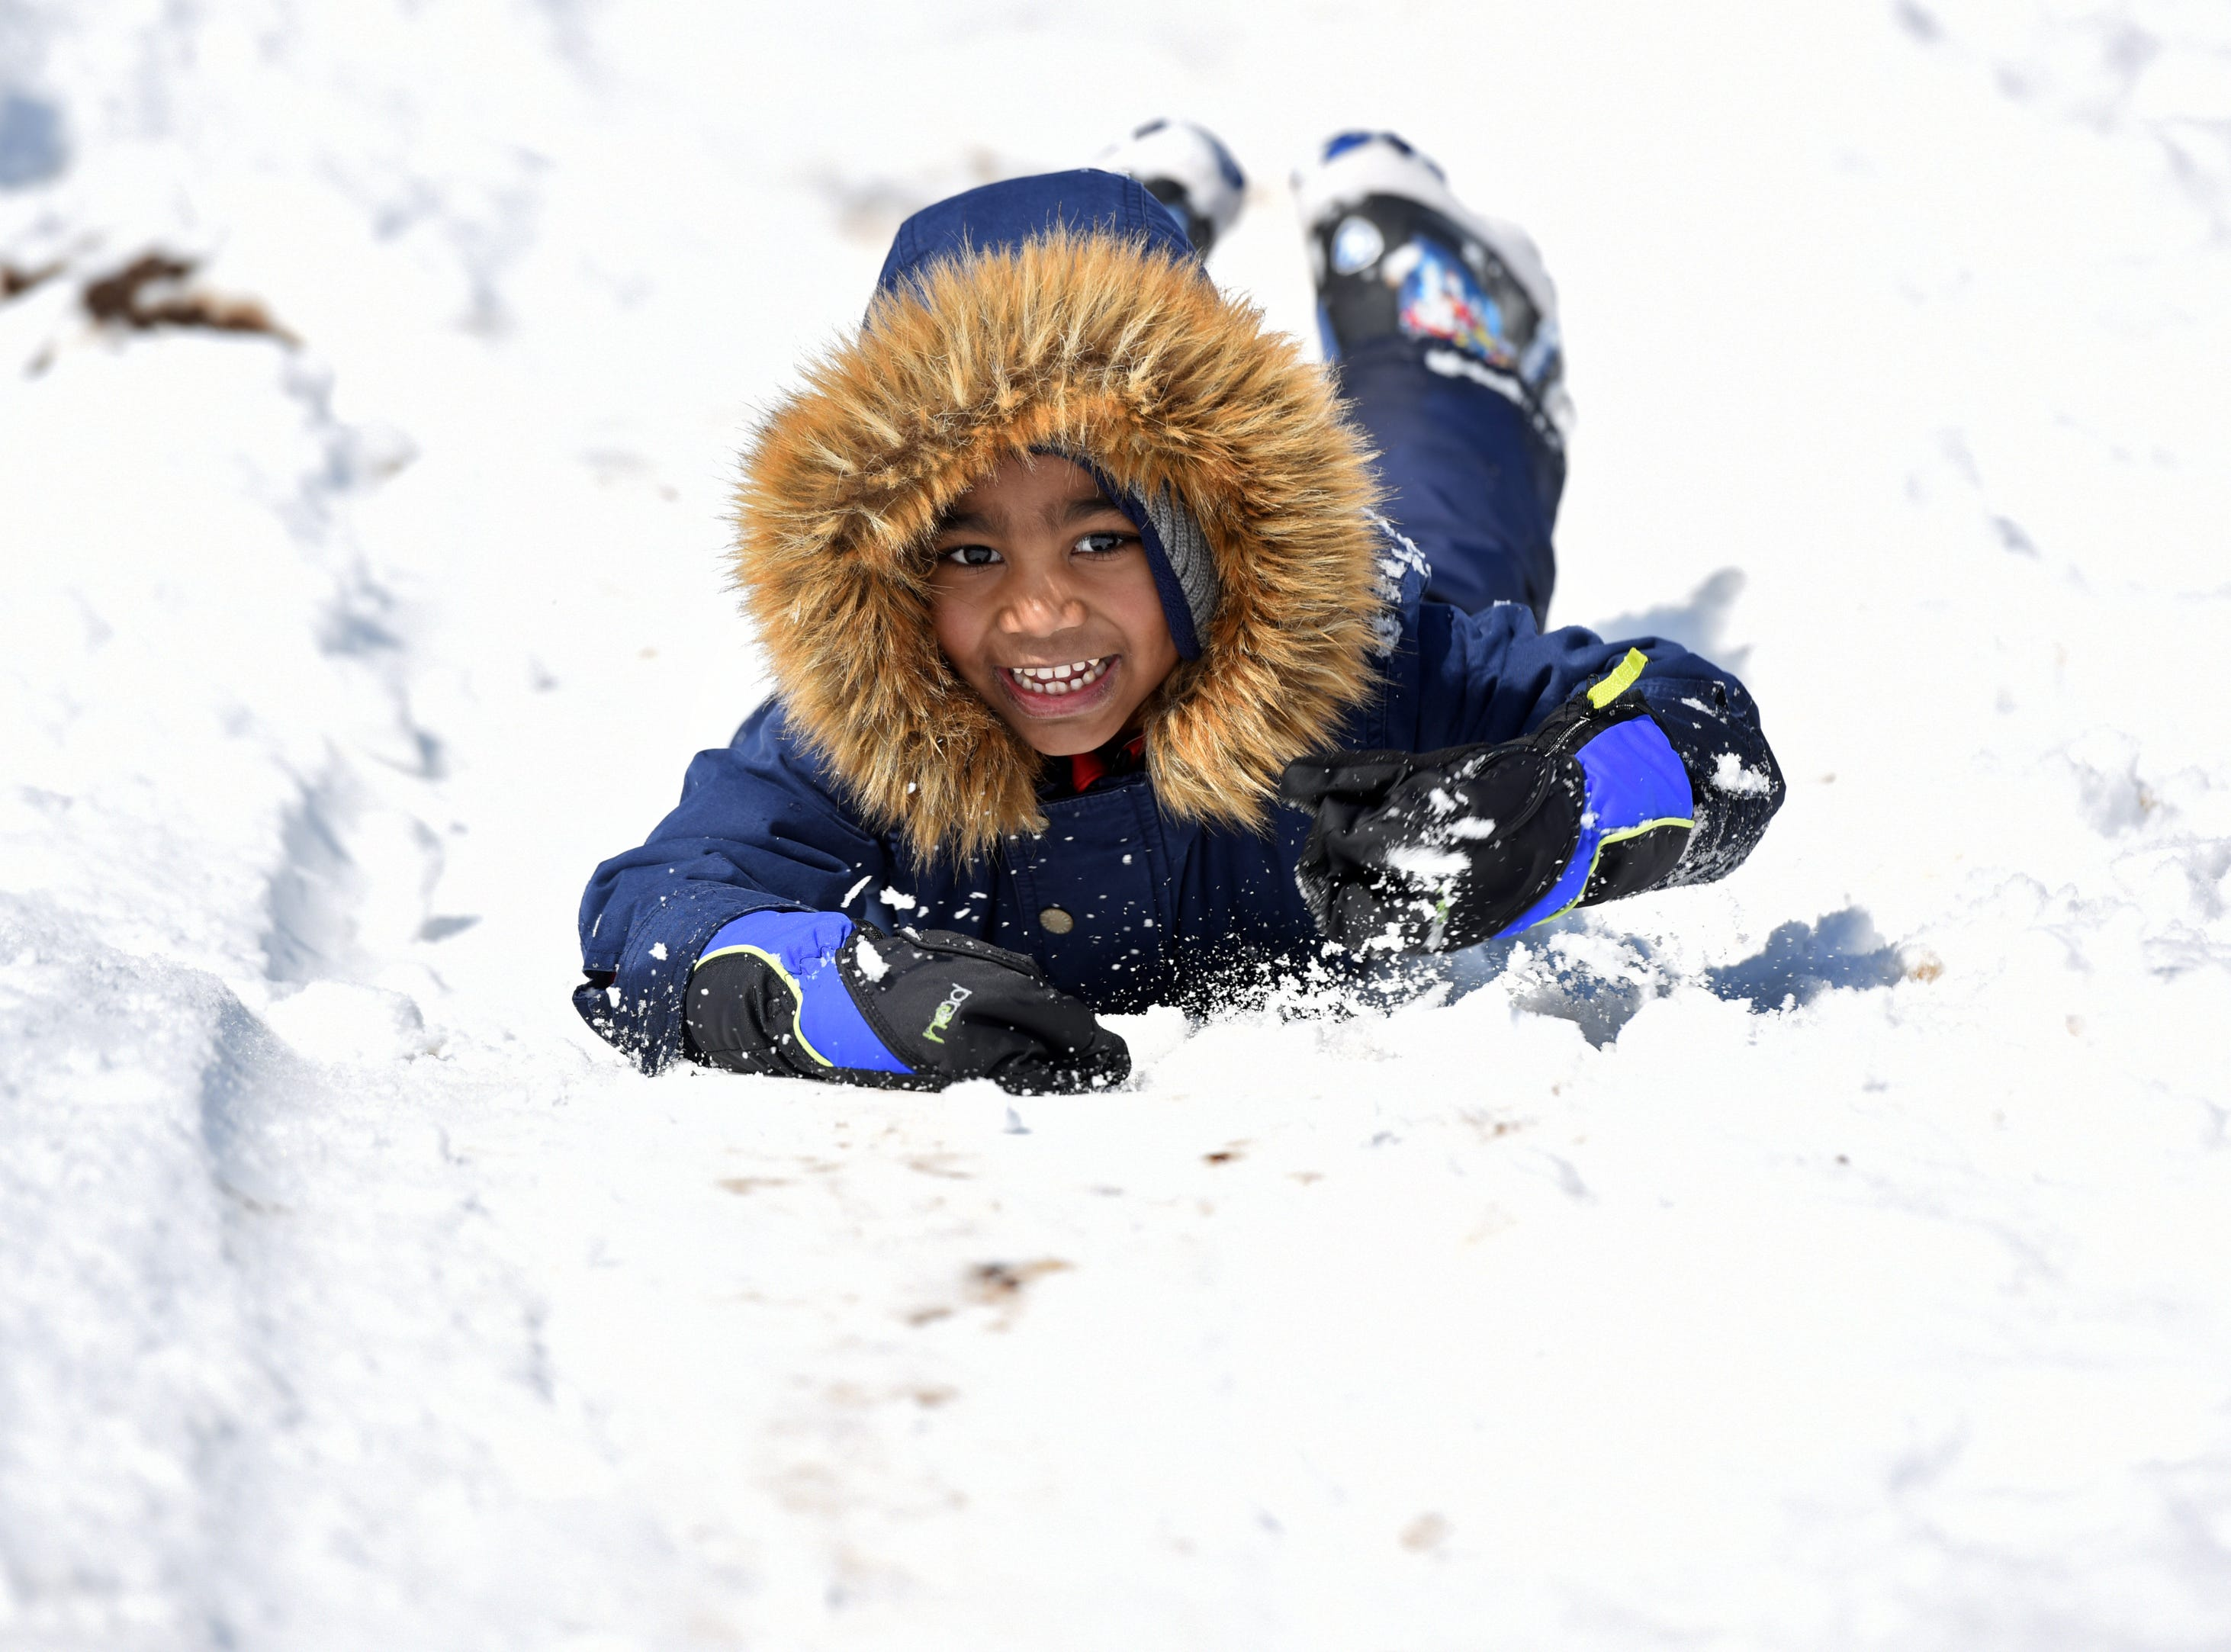 Dyllen Scott, 5, tries out body sledding at Mt. Prospect Park in Clifton on Monday, March 4, 2019.